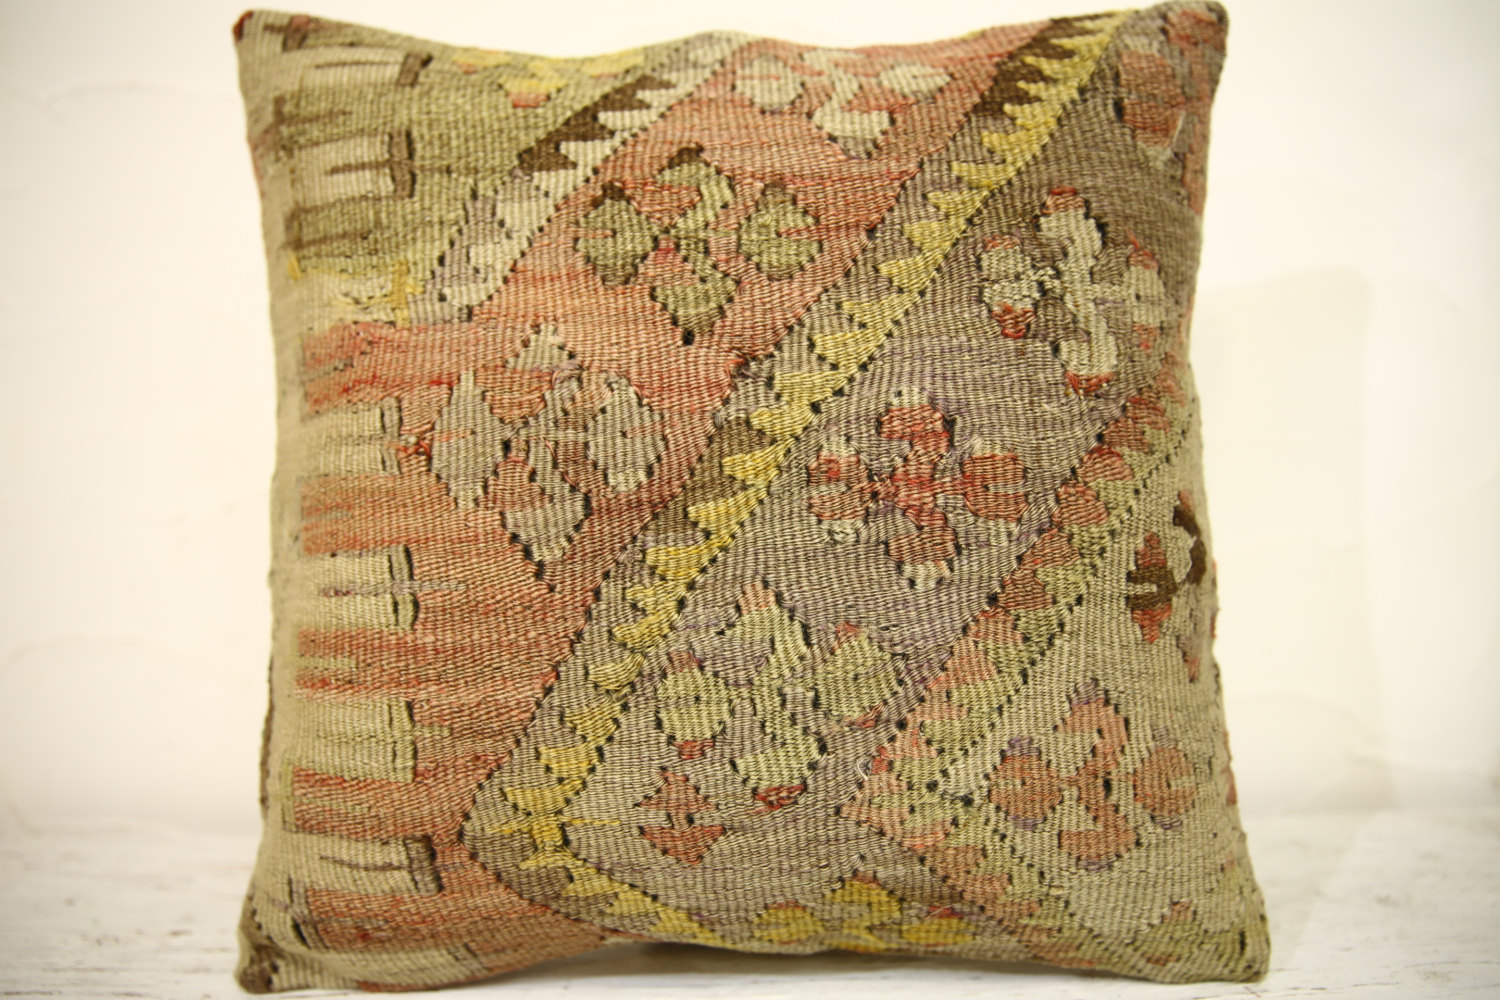 Kilim Pillows | 16x16 | Turkish pillows | 1385 | Accent Pillow,Decorative Pillow